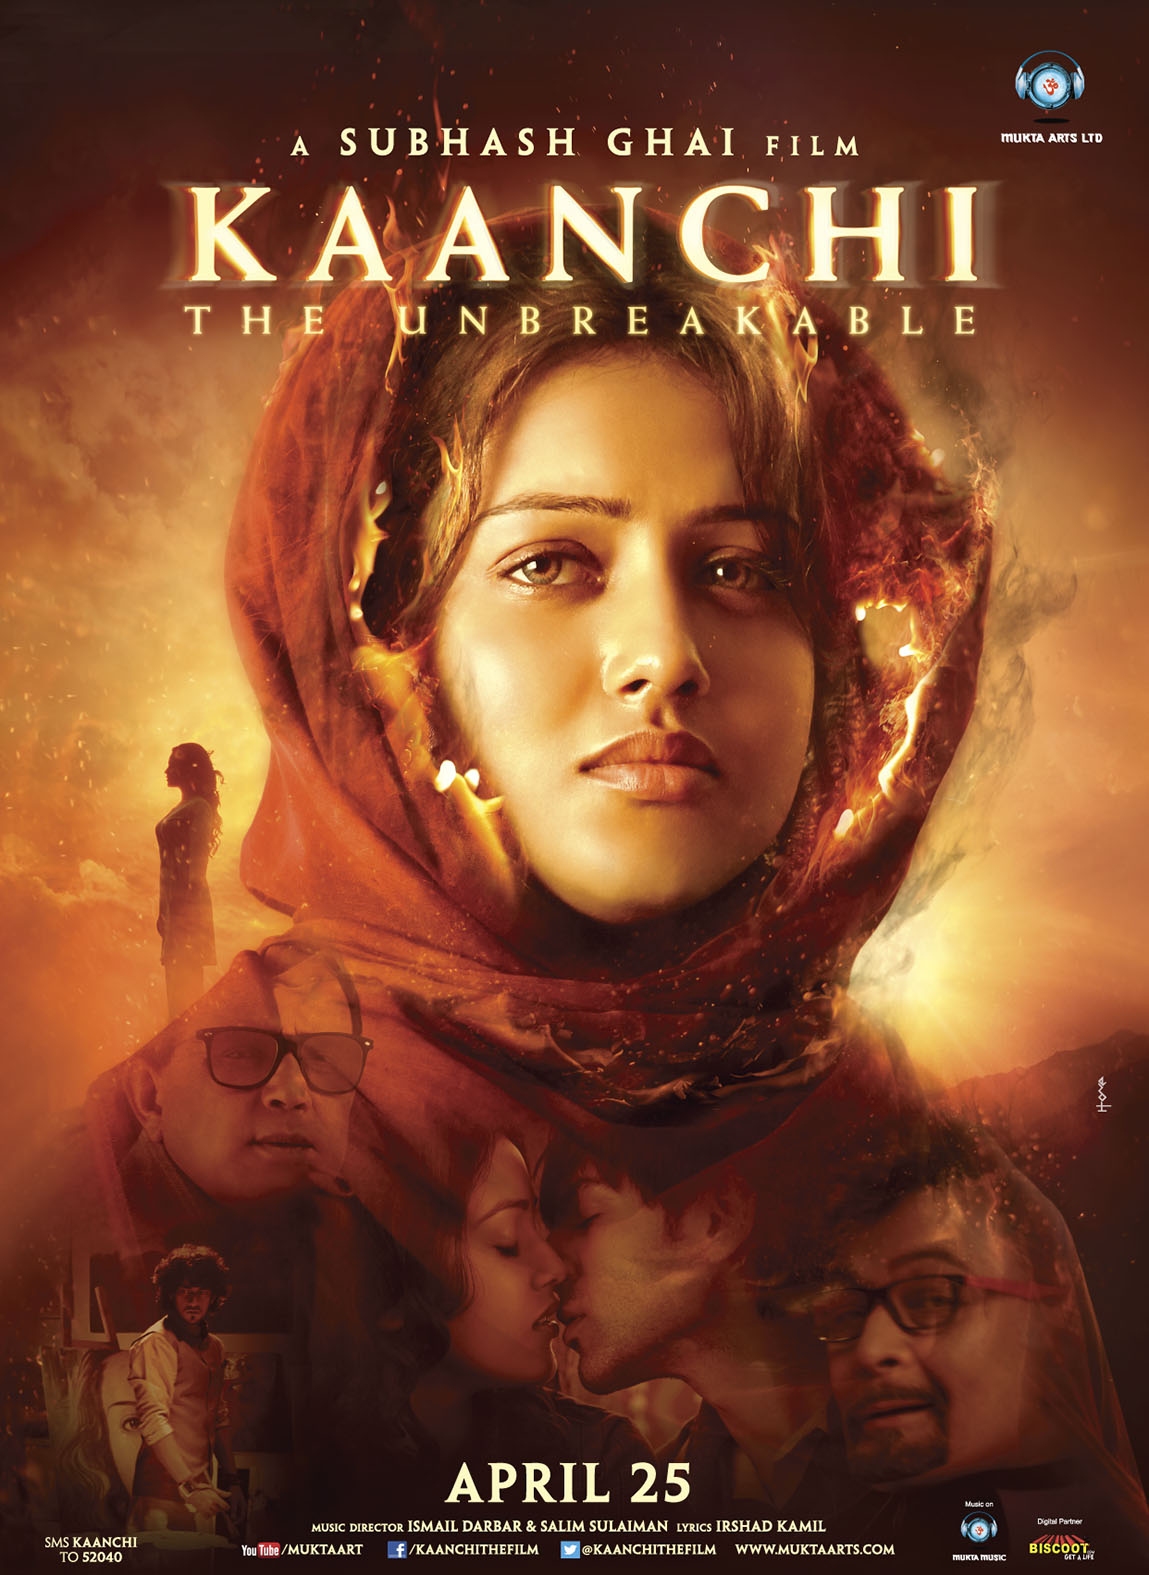 Kaanchi Poster Digital  Subhash Ghai's 'Kaanchi  The Unbreakable'